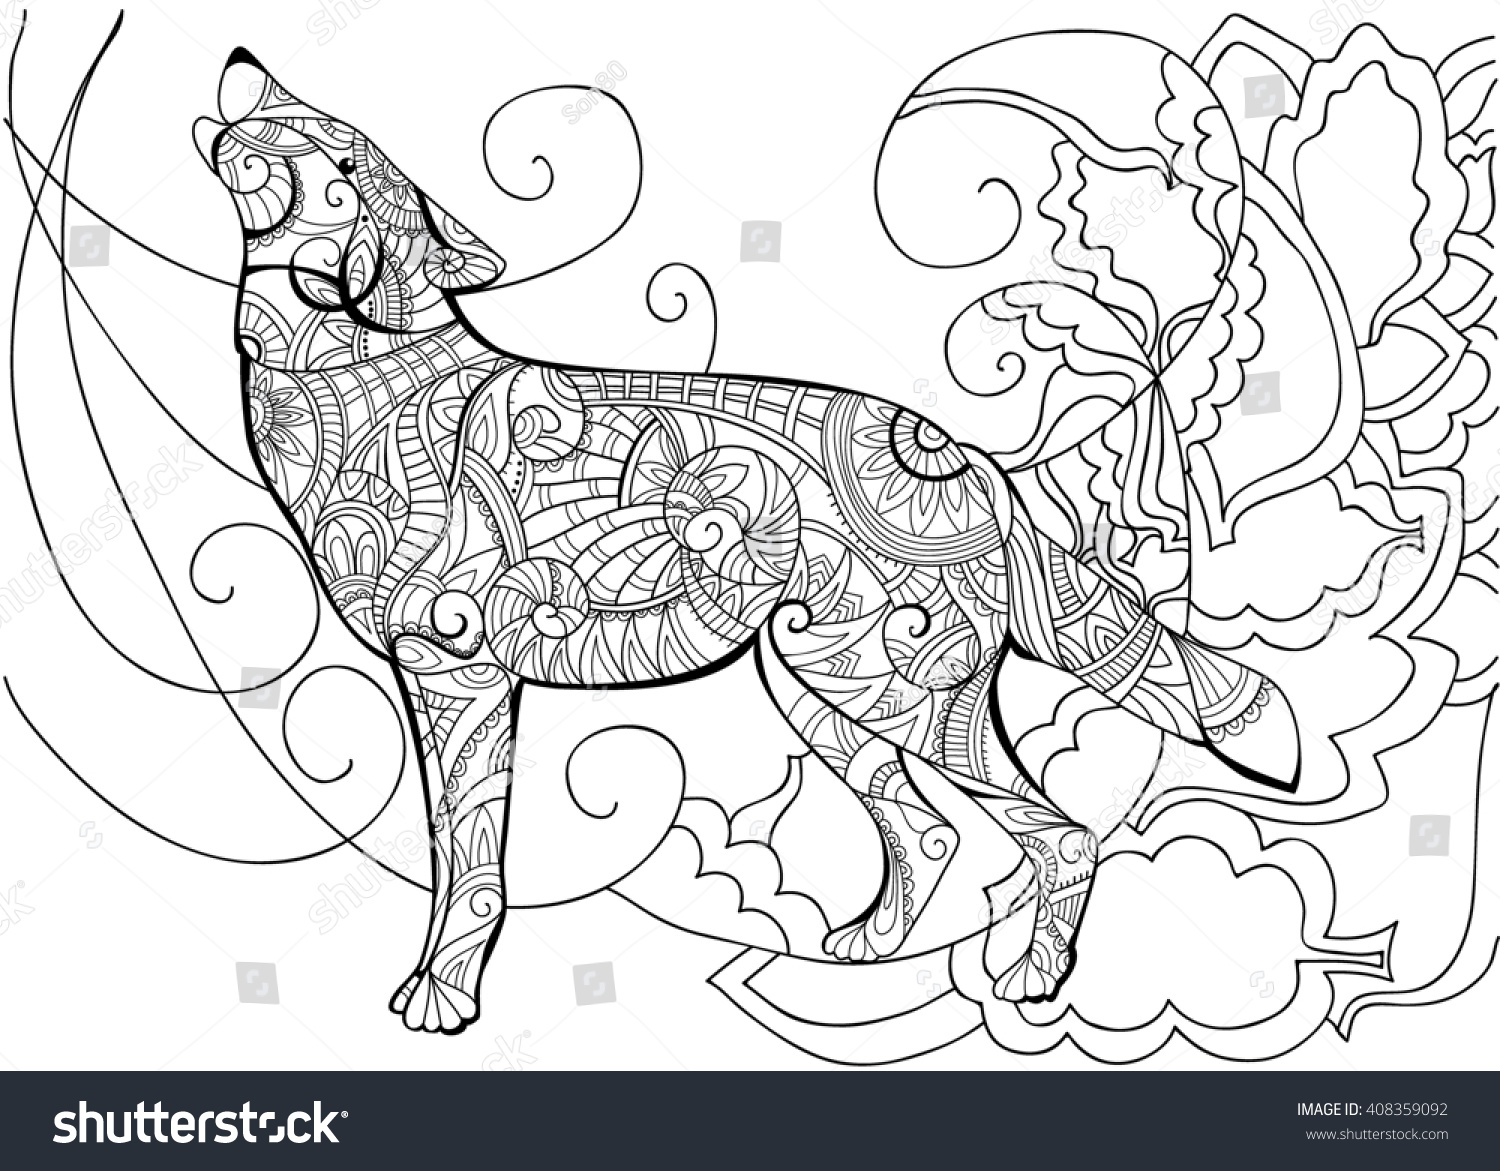 Coloring pages for adults wolf - Wolf Animal Coloring With Wolf Wolf Coloring Coloring Book For Adults Illustration